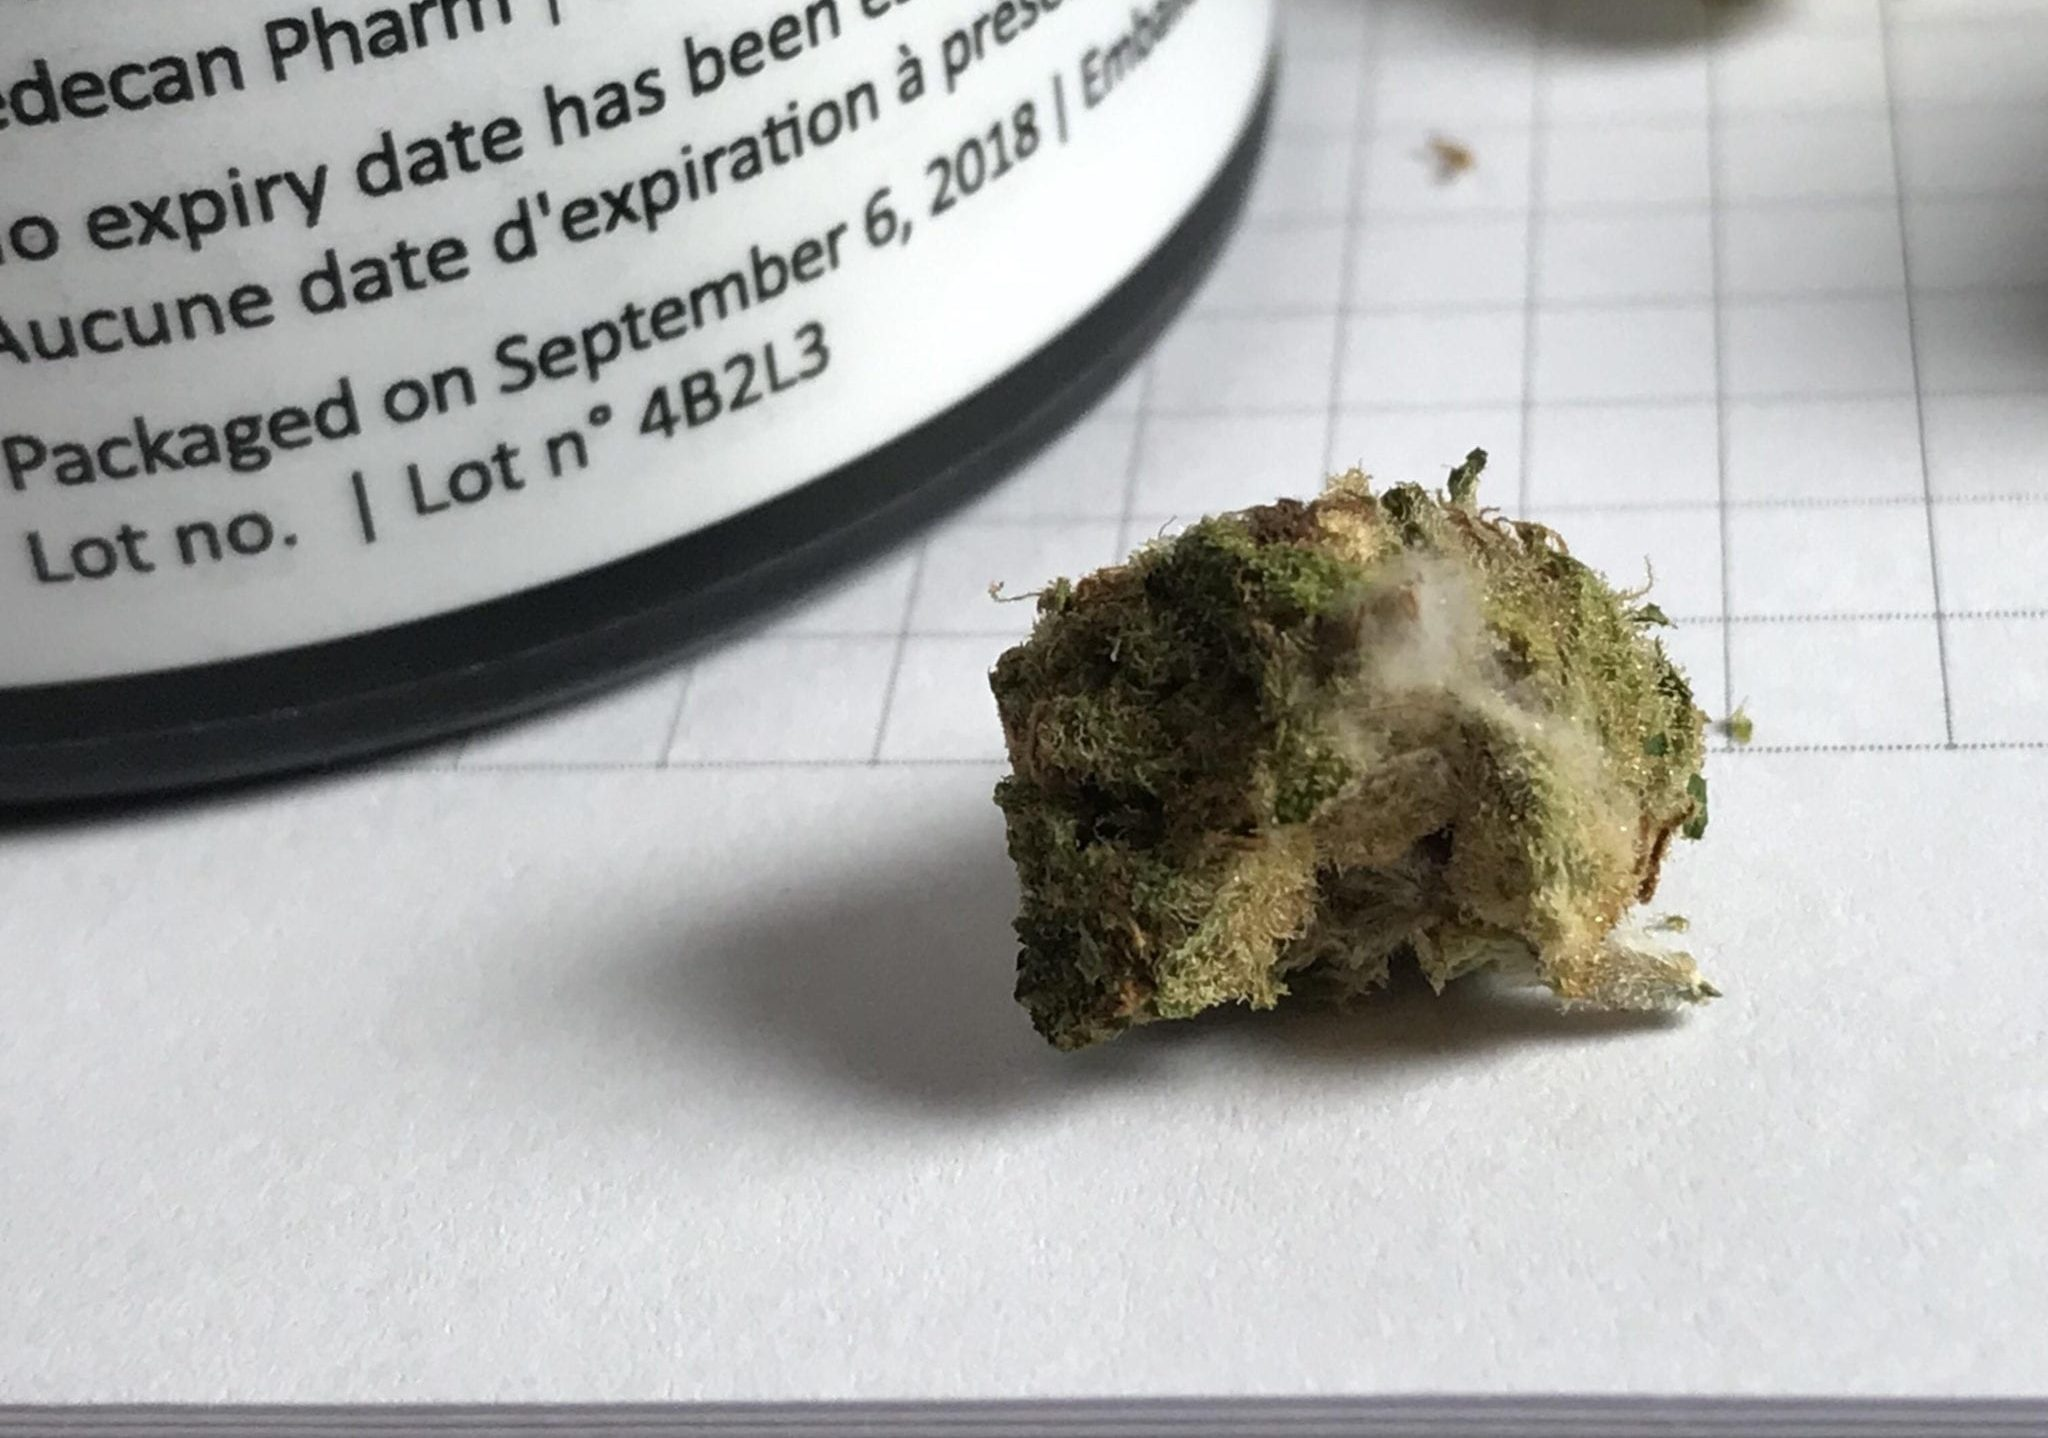 Slow provincial pot distribution channels continue to create issues like mould